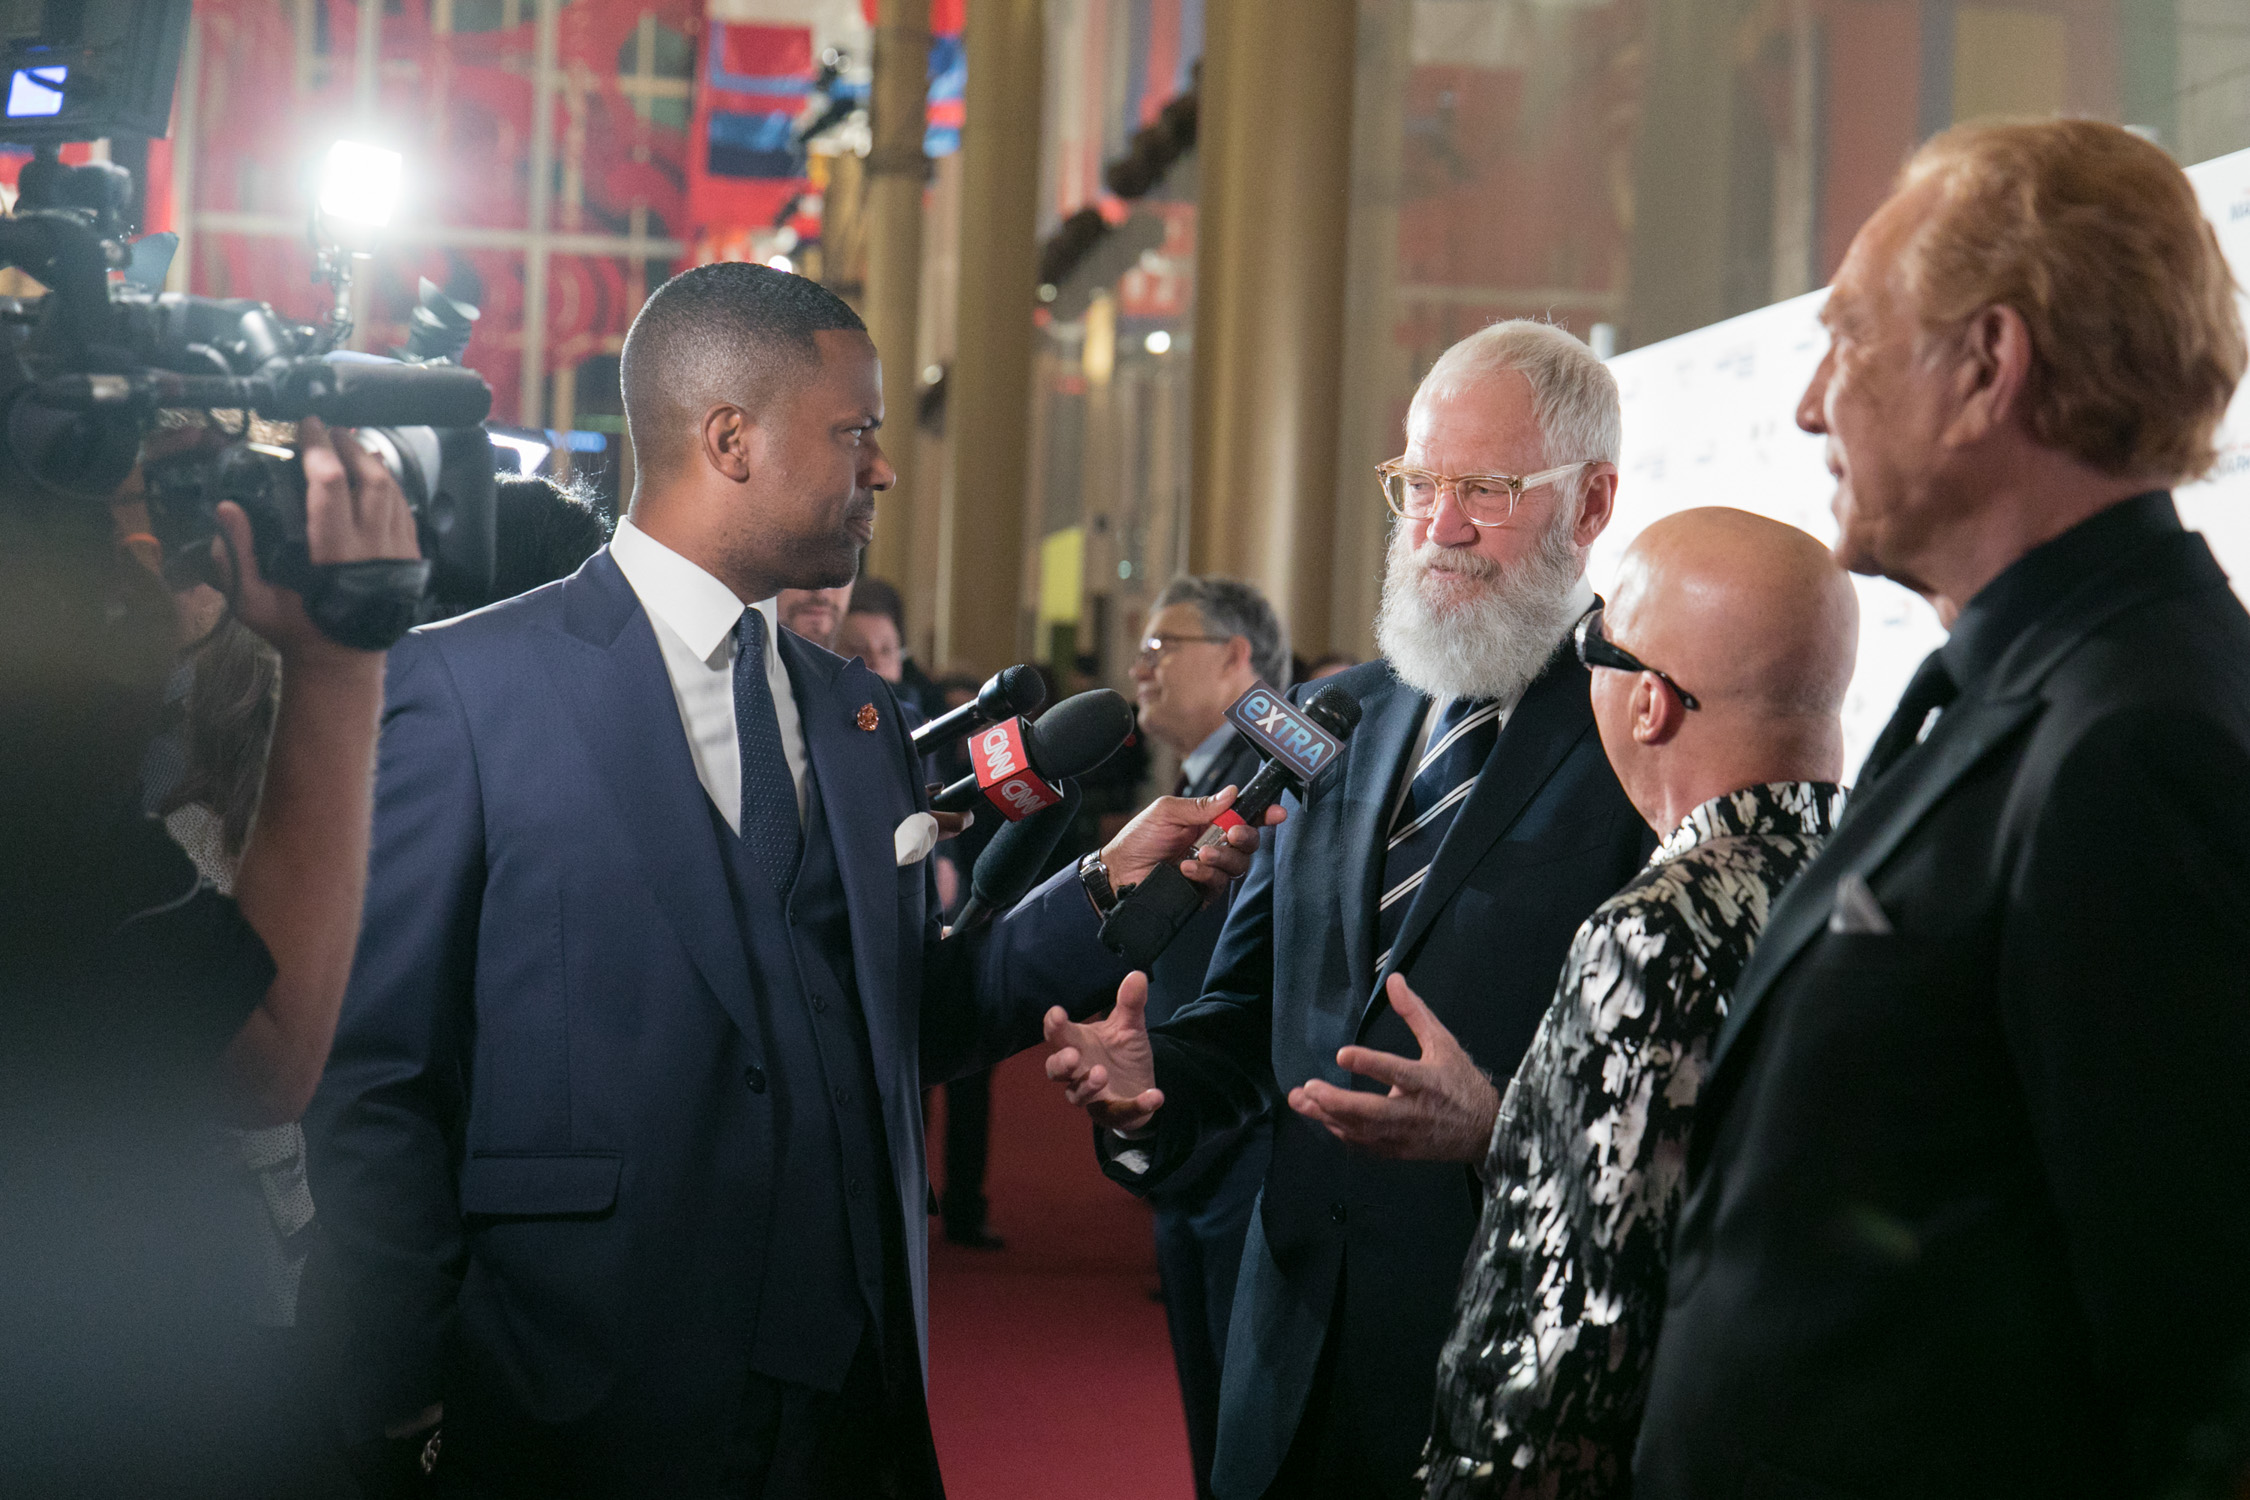 image of David Letterman Paul Schaffer Alan Watts being interviewed by AJ Calloway for Extra TV at Mark Twain Prize Awards at Kennedy Center in Washington DC